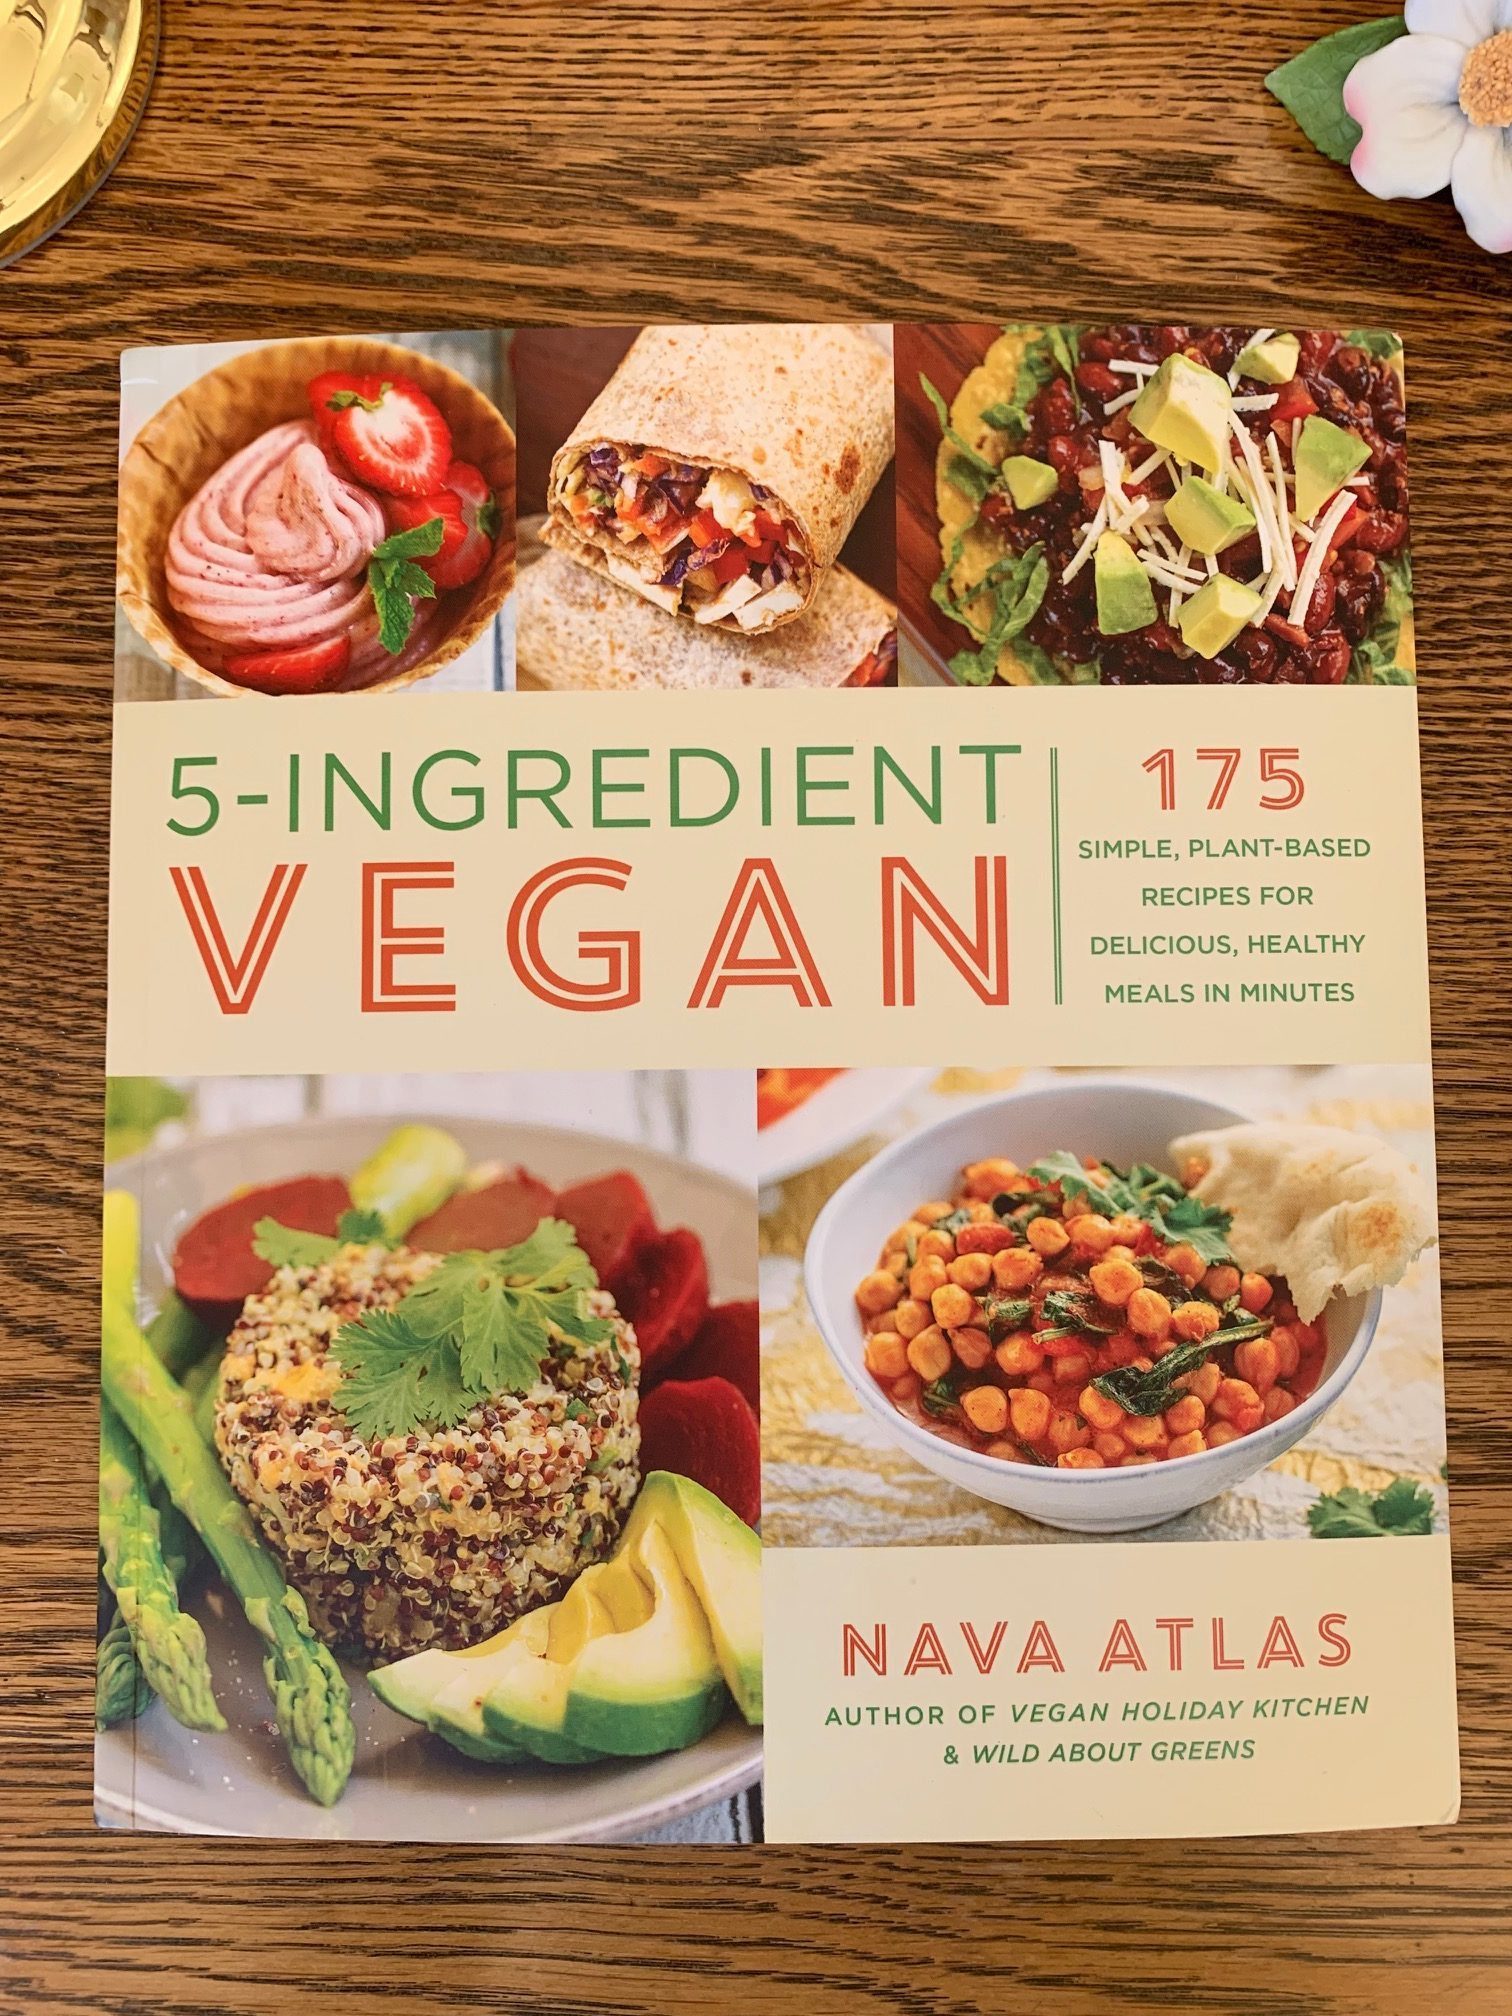 5 Ingredient Vegan by Nava Atlas 3